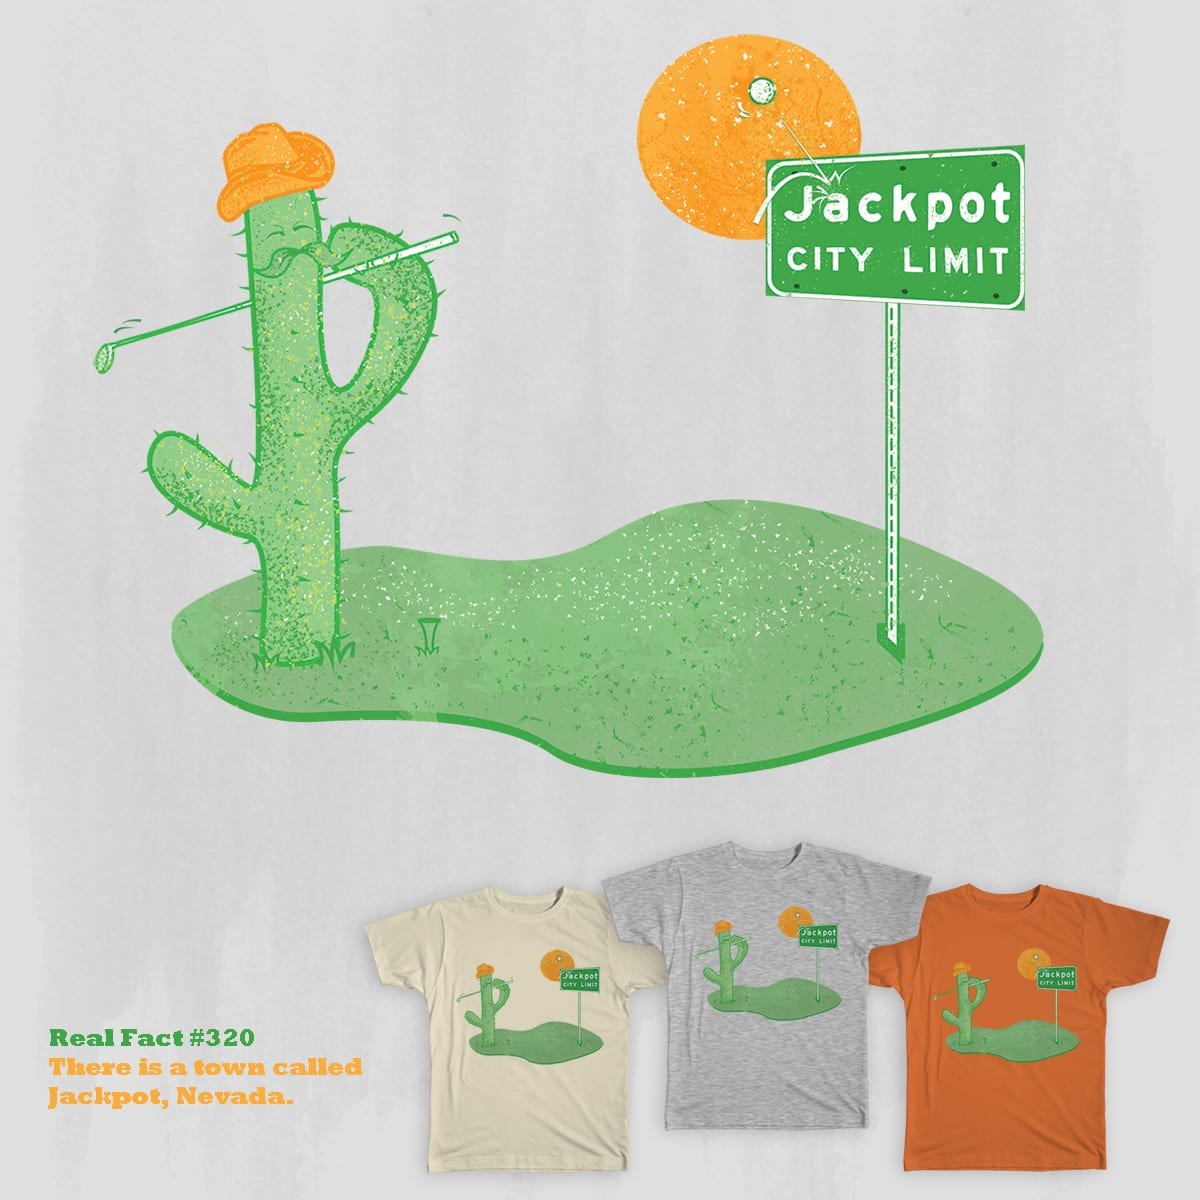 Hitting the jackpot...um...sign... by LStrider on Threadless